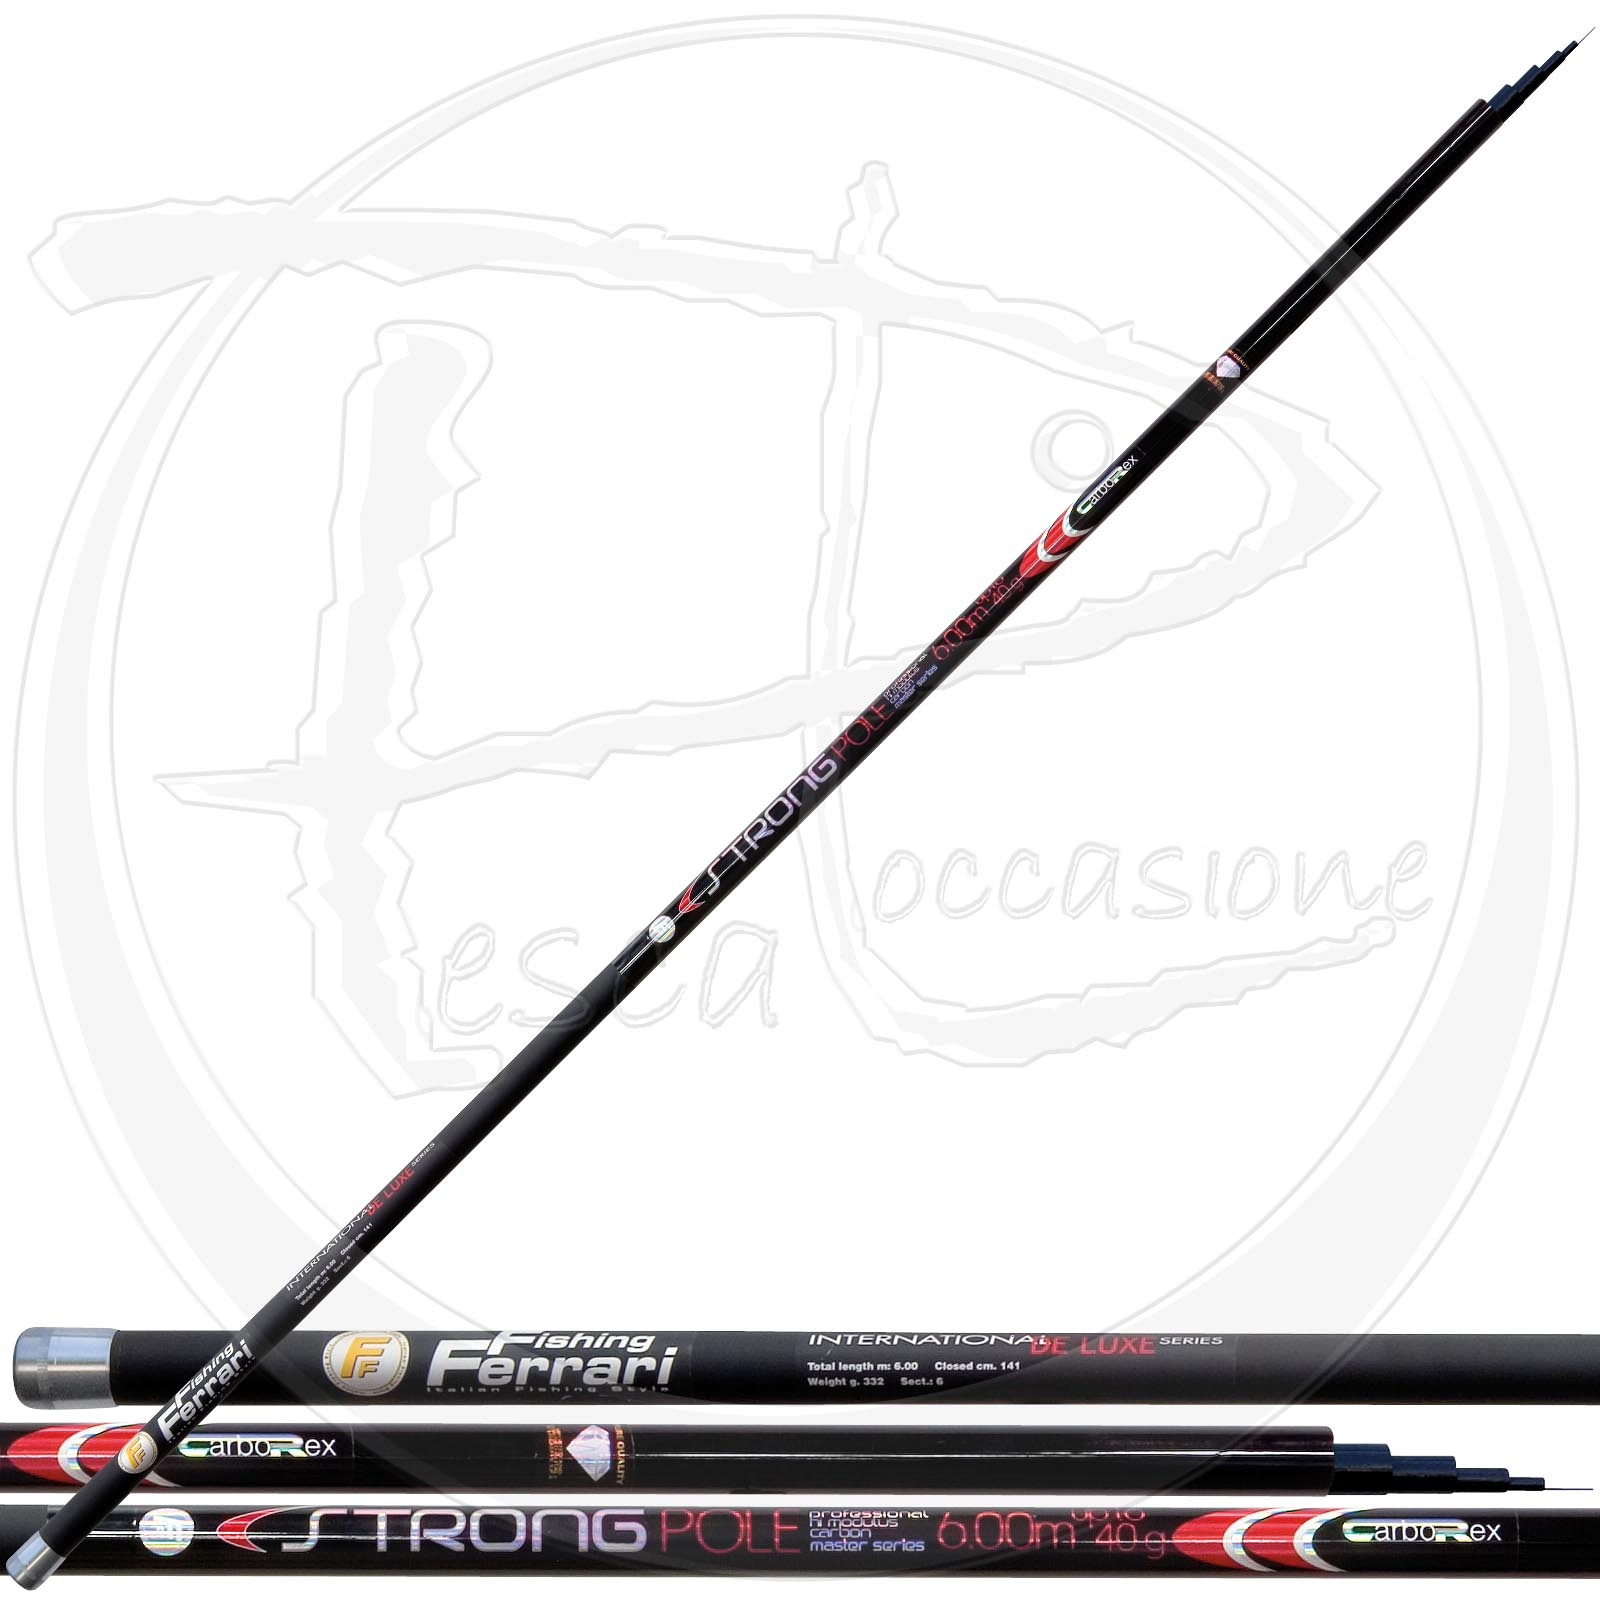 Carborex strong pole pescaloccasione for Strongest fishing rod